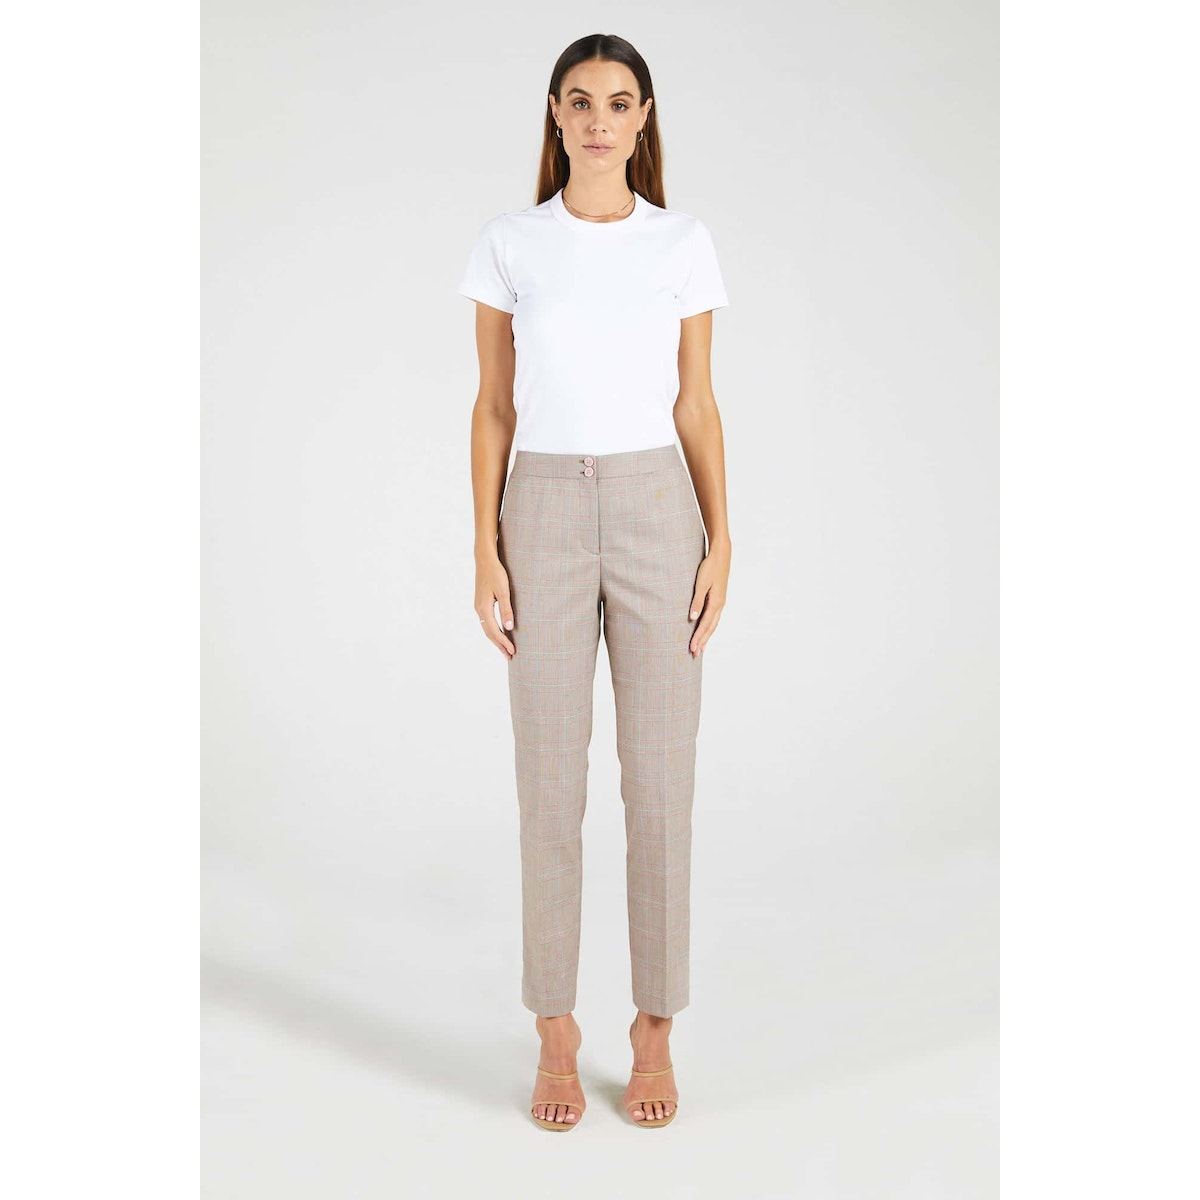 InStitchu Collection The McAuley Brown and Pink Glen Plaid Pants